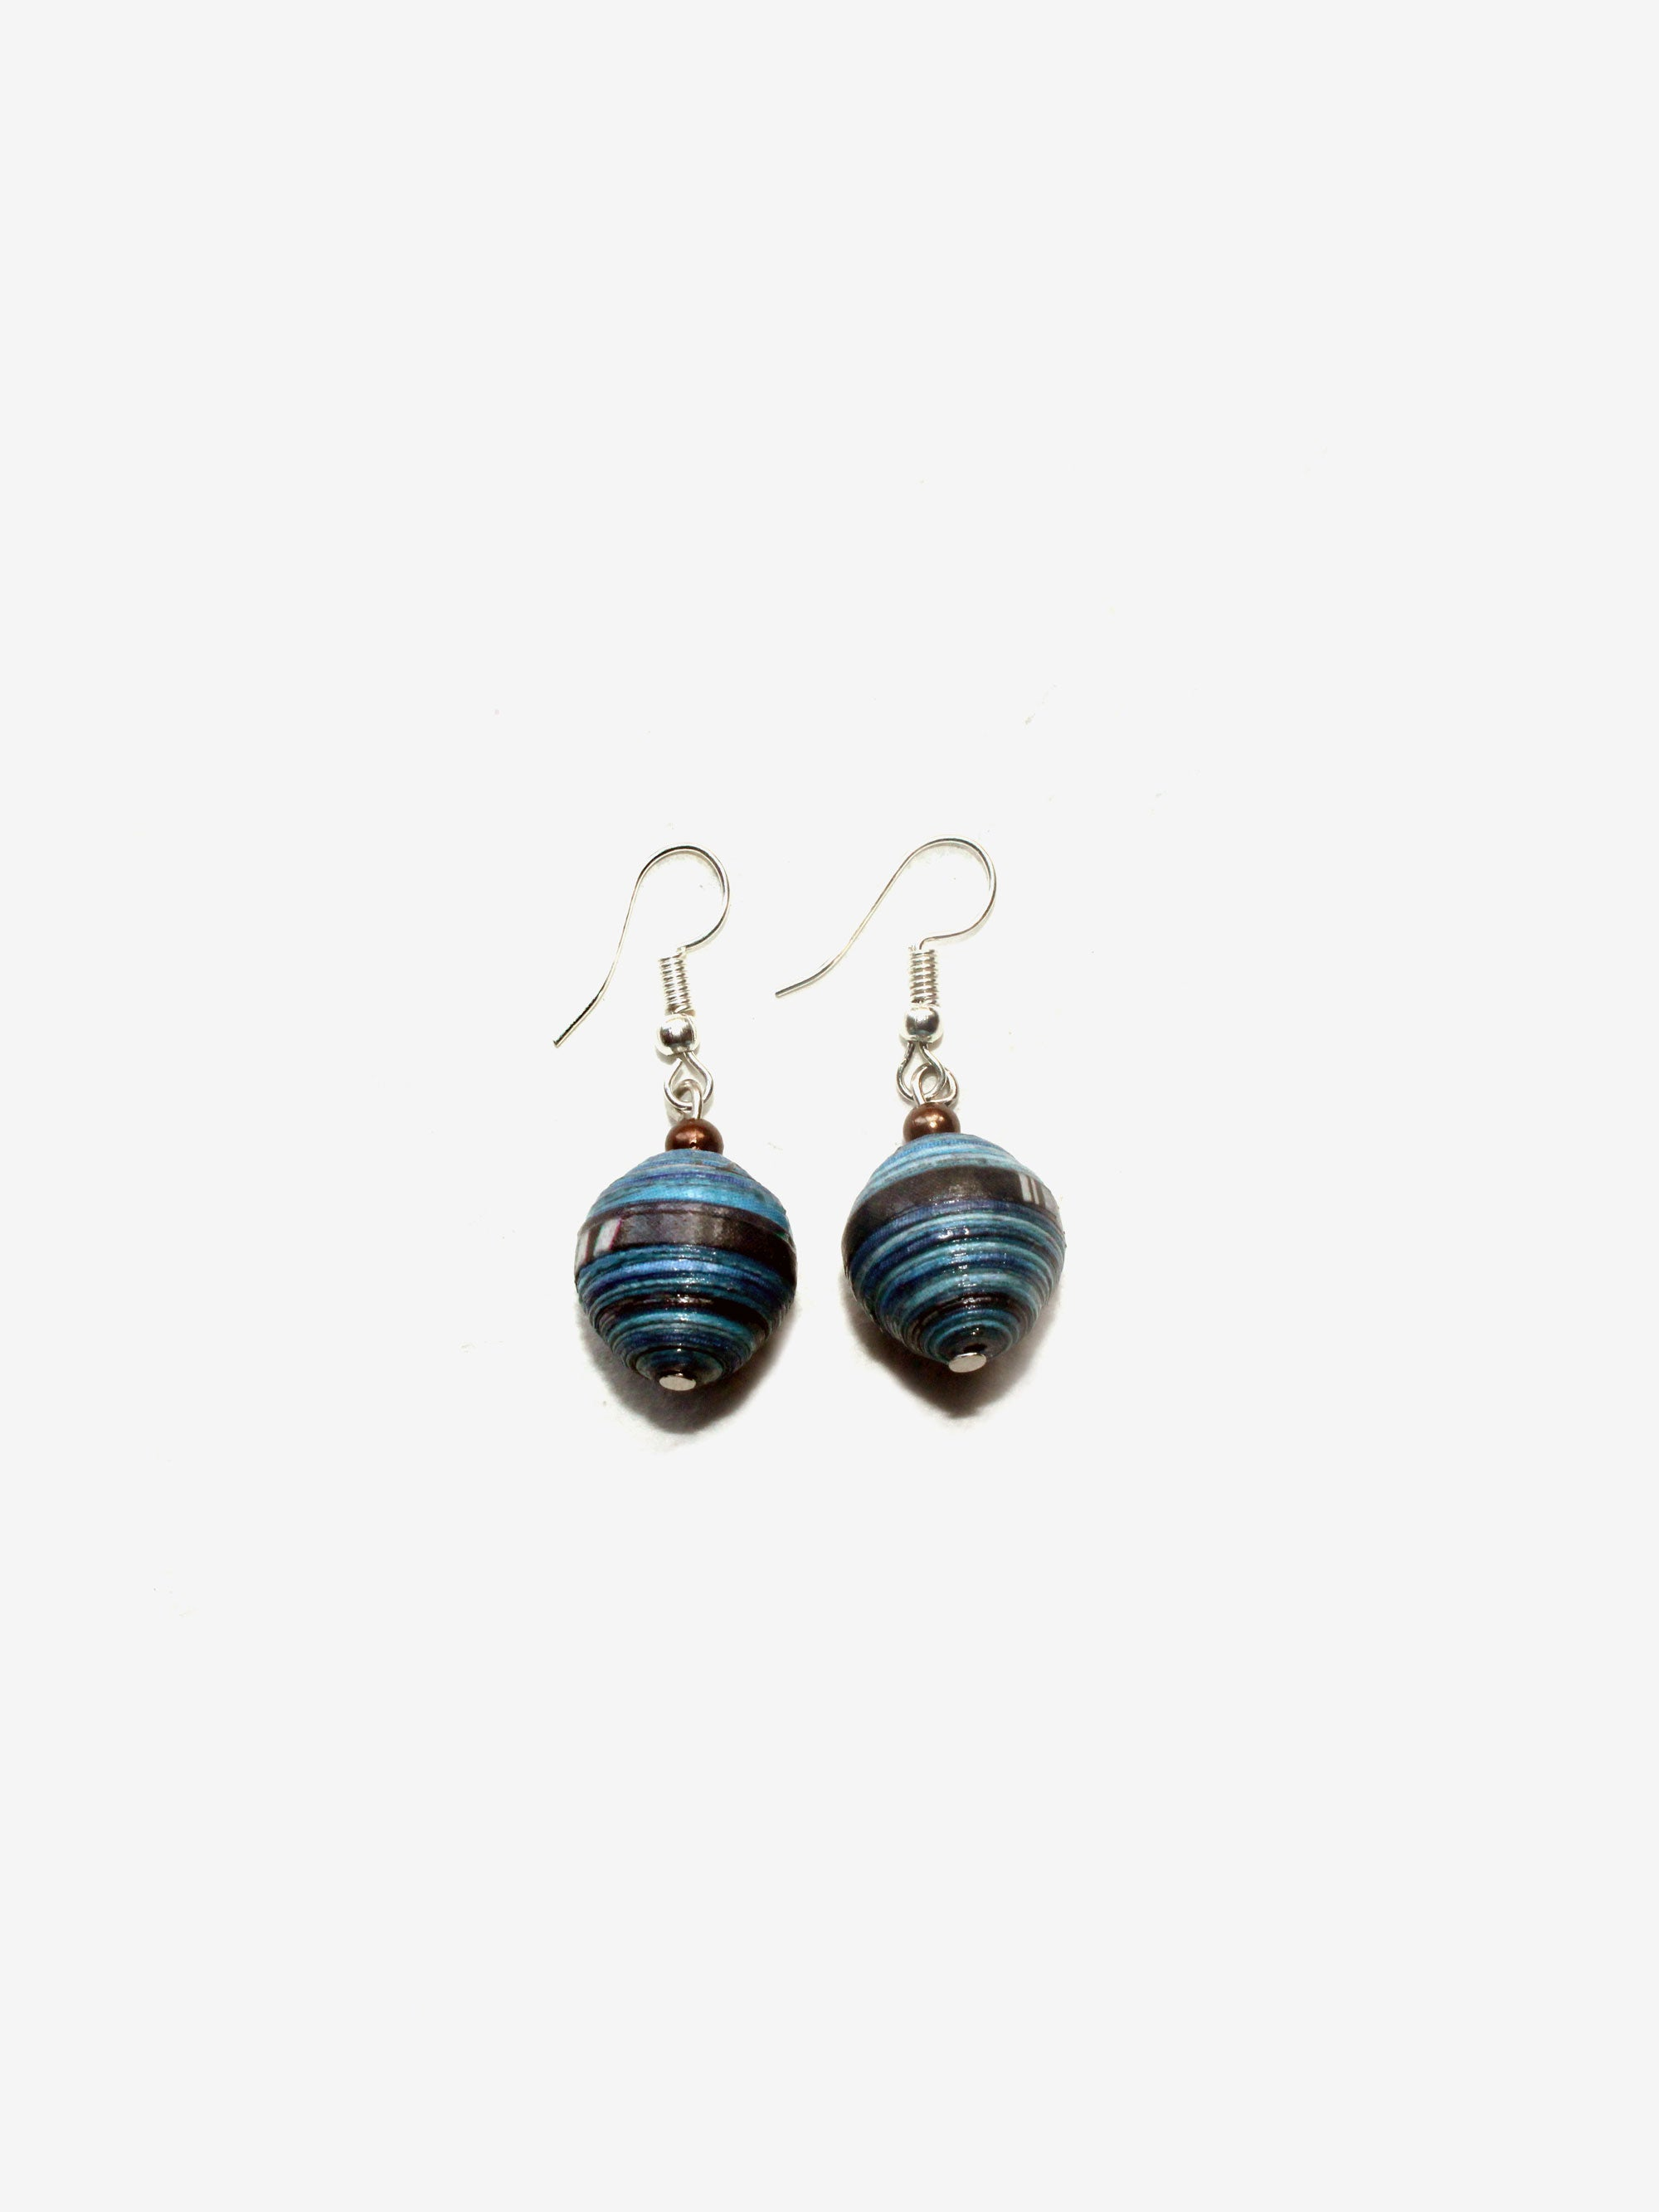 Handcrafted Lao Earrings in Bluebird